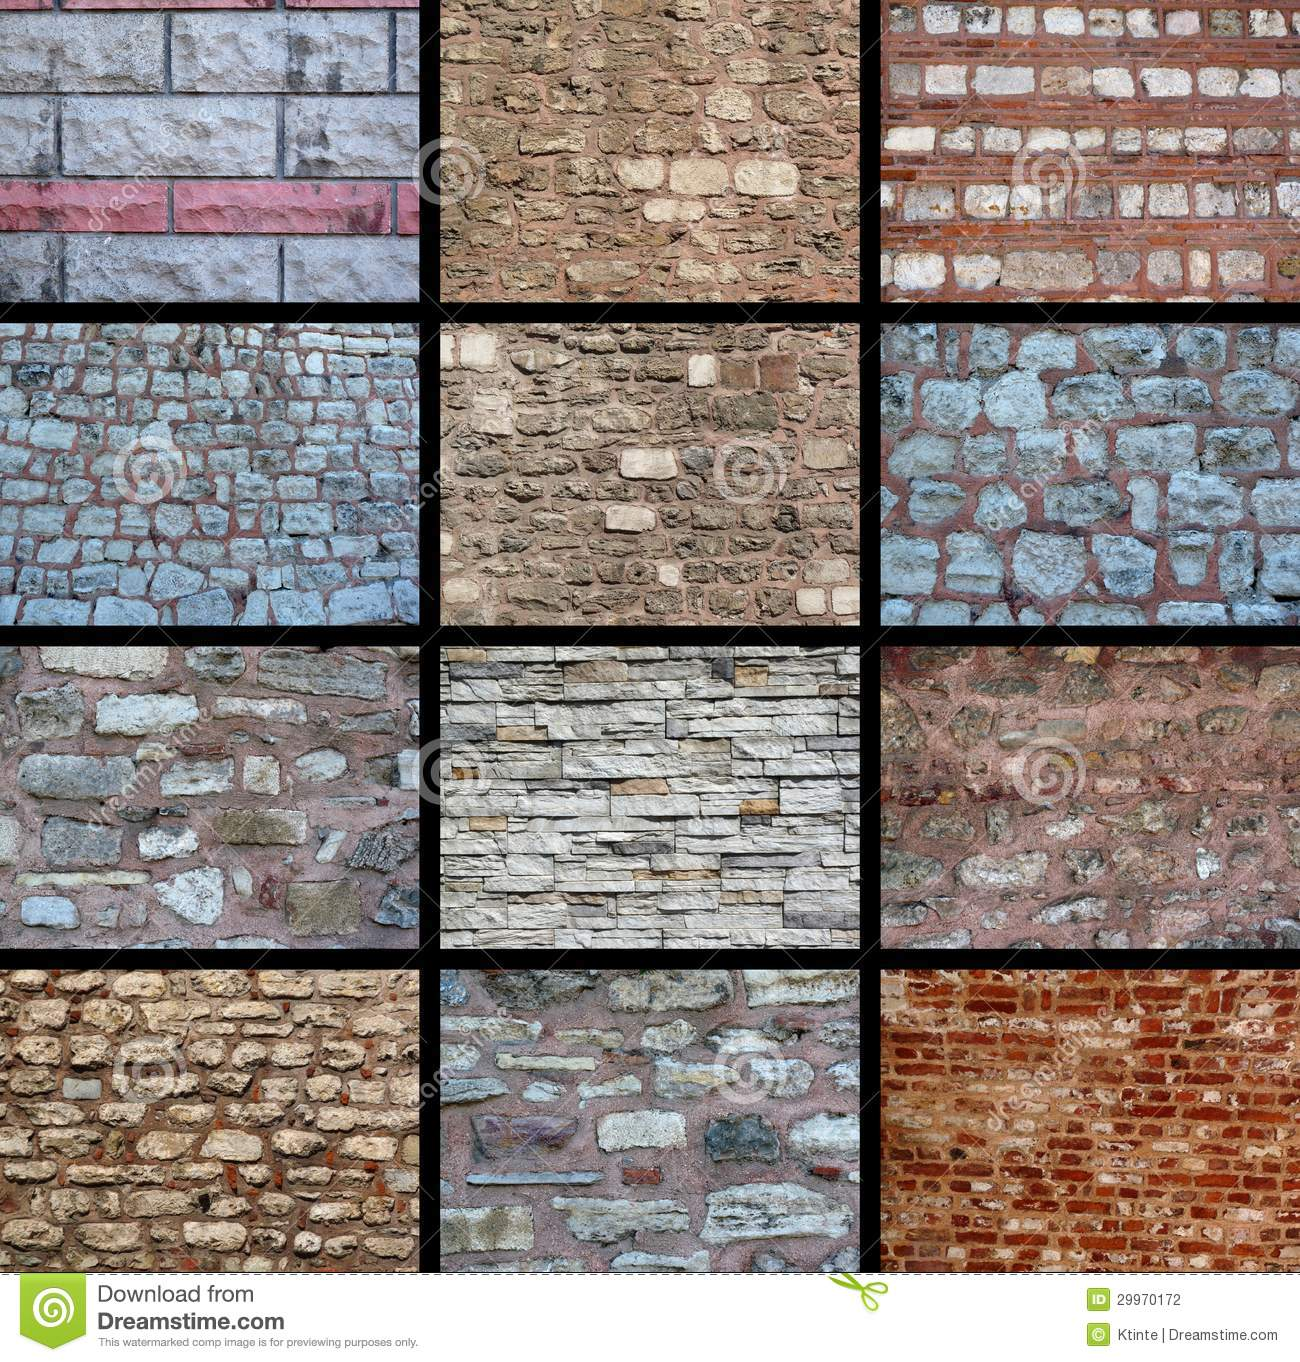 Different Wall Textures A Variety Of Wall Textures Stock Photography Image 29970172